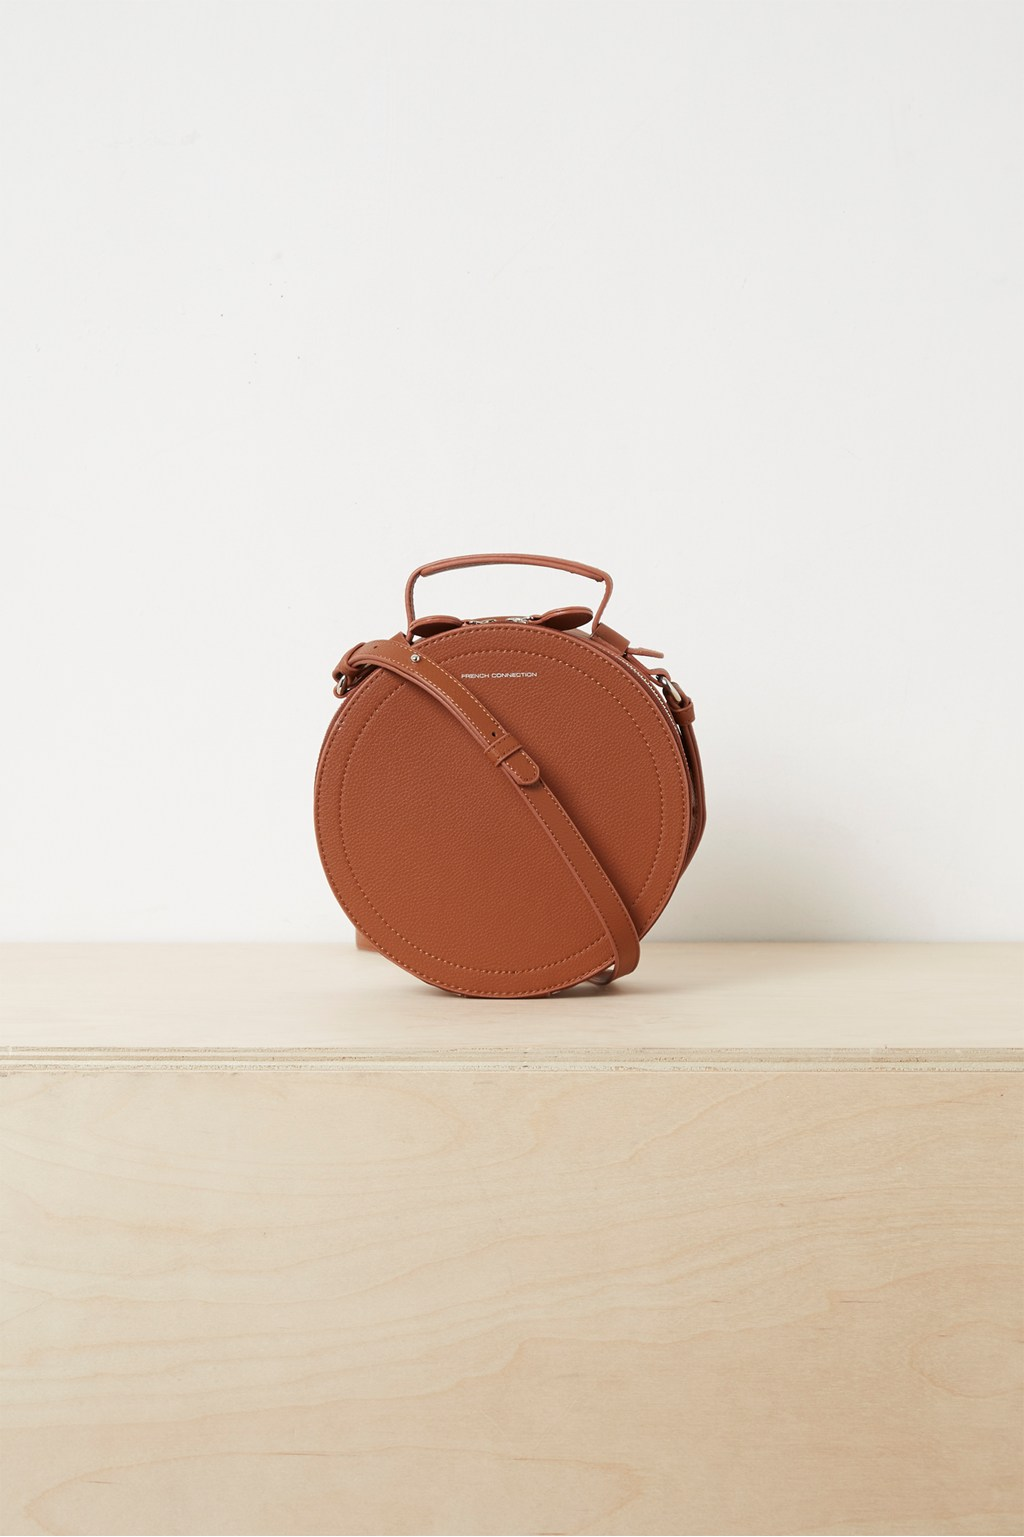 65c8dade715c Trace Recycled Leather Crossbody Bag. loading images.